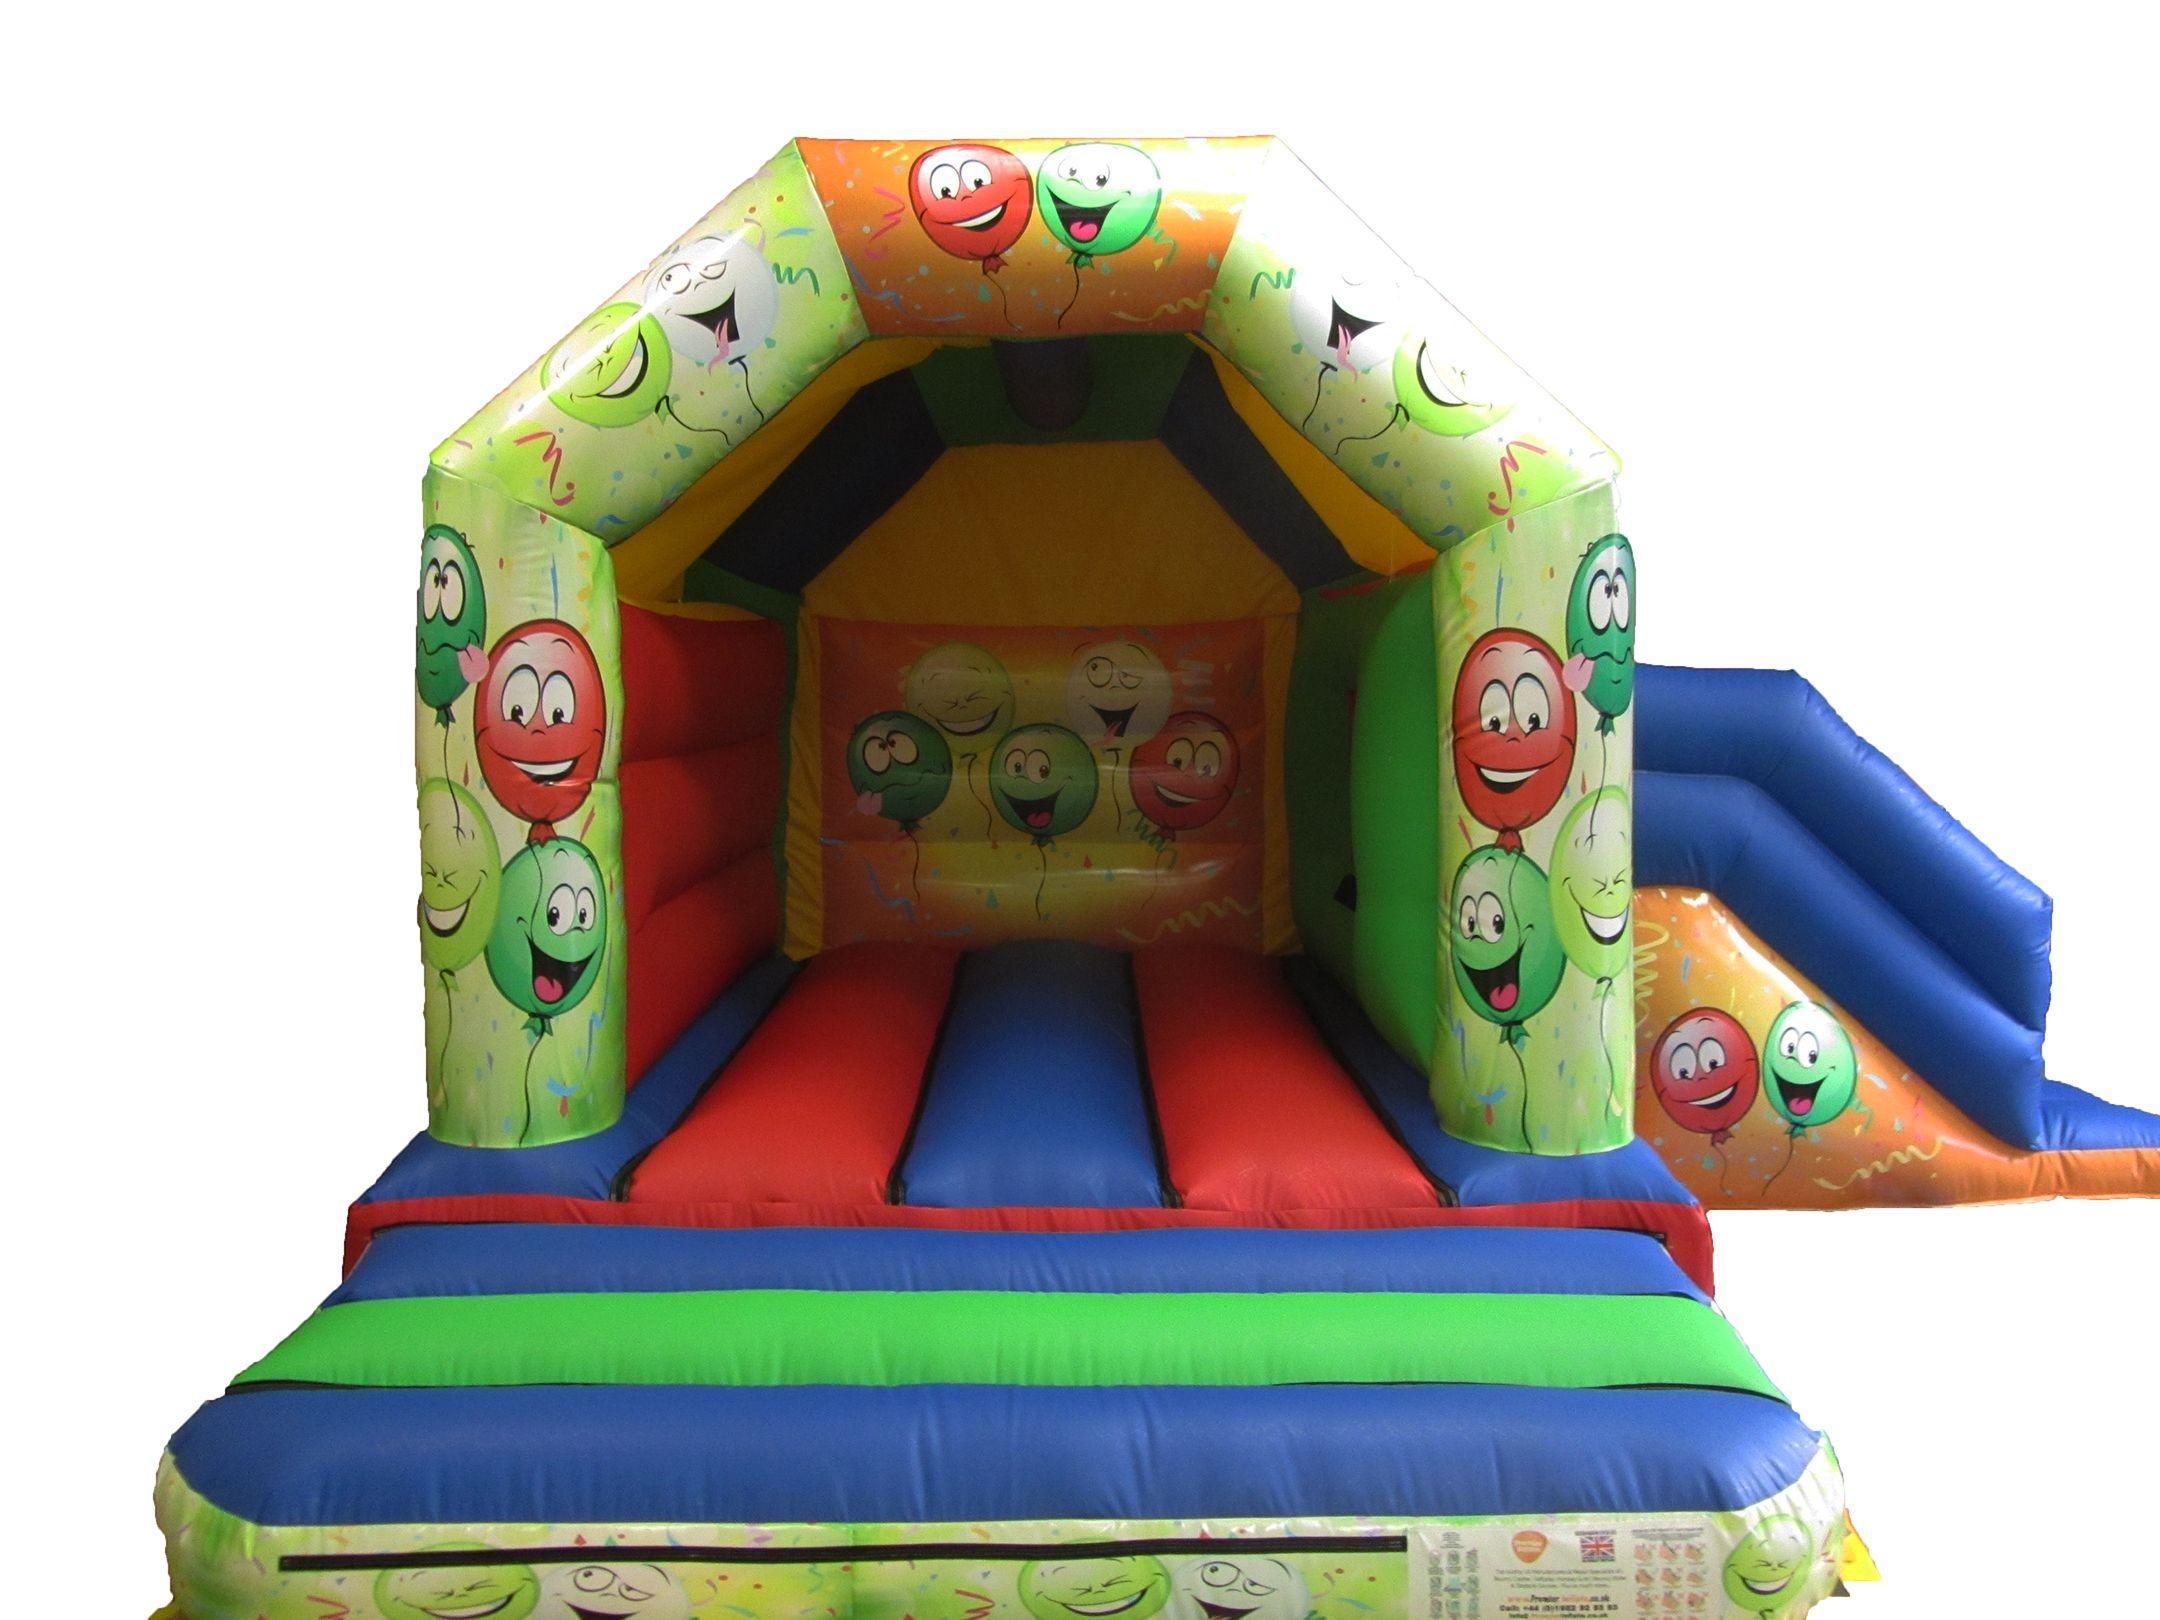 17x15 smiley face combi childs bouncy castle compressor